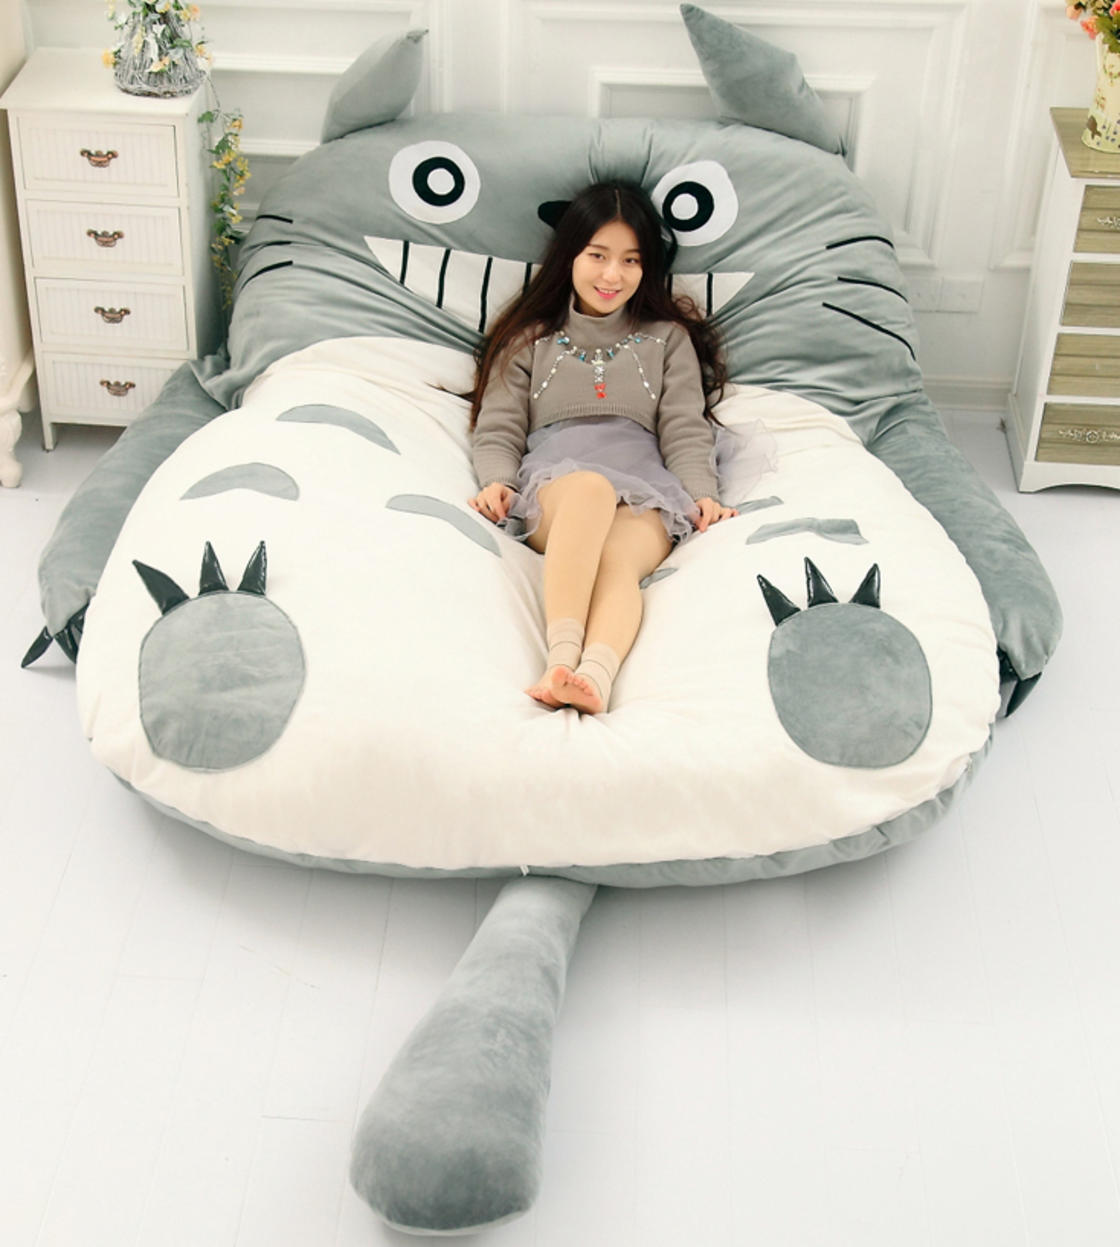 This Totoro bed is the perfect gift for all Miyazaki fans